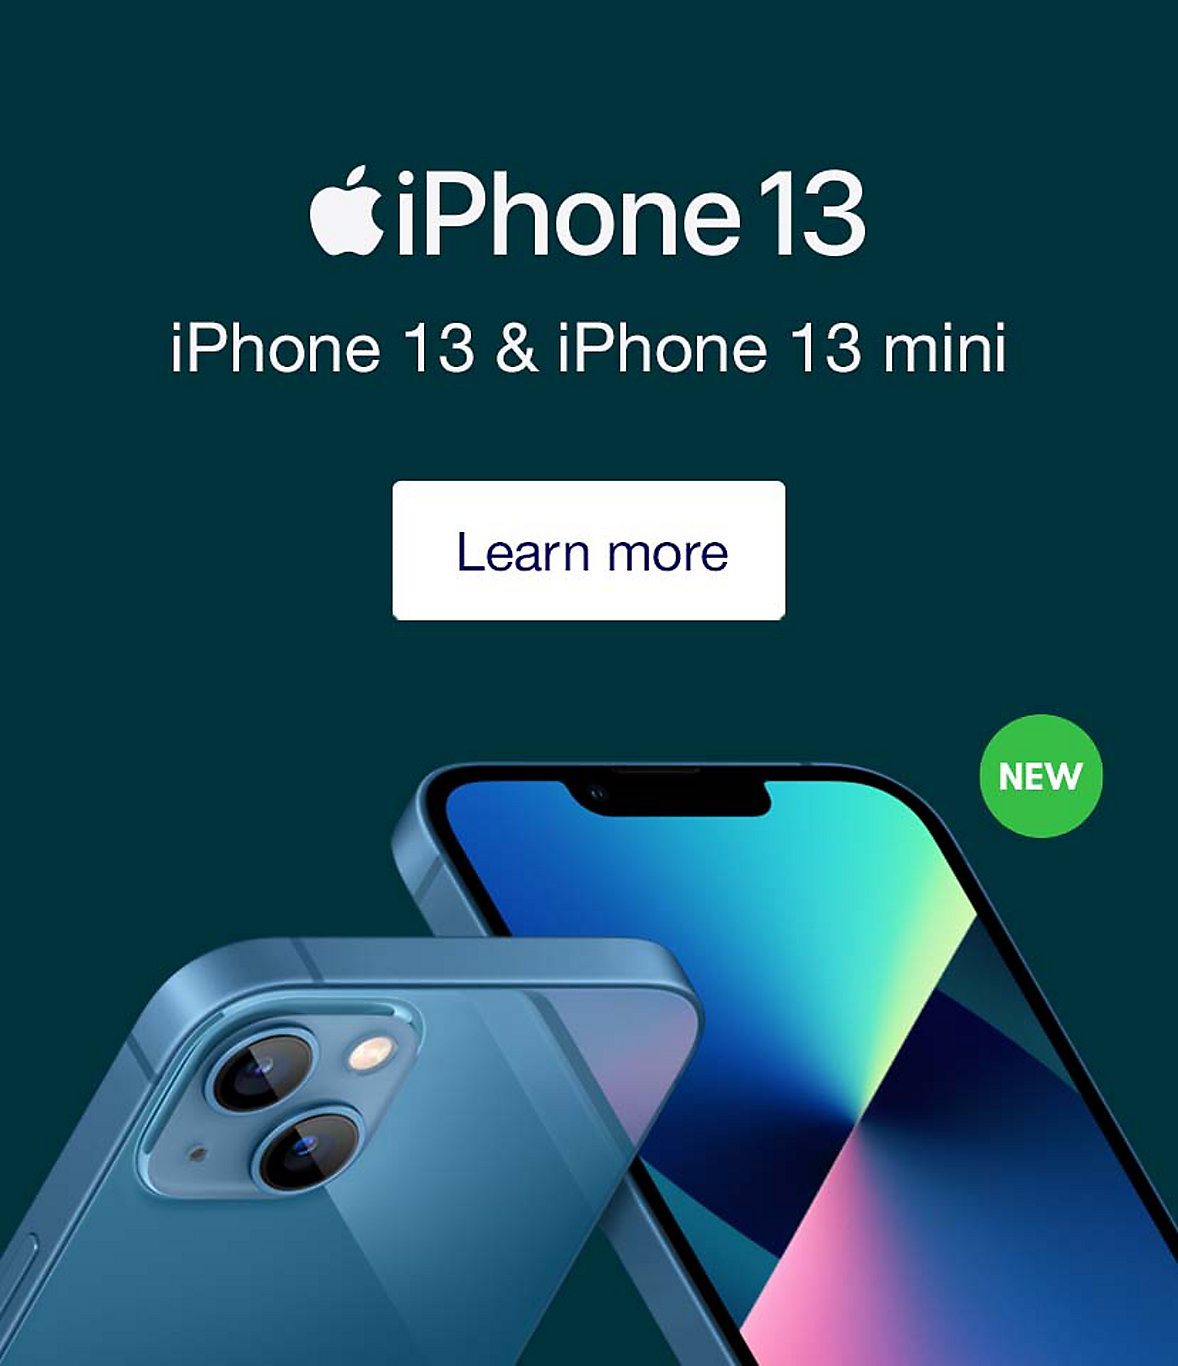 Learn more about iPhone 13